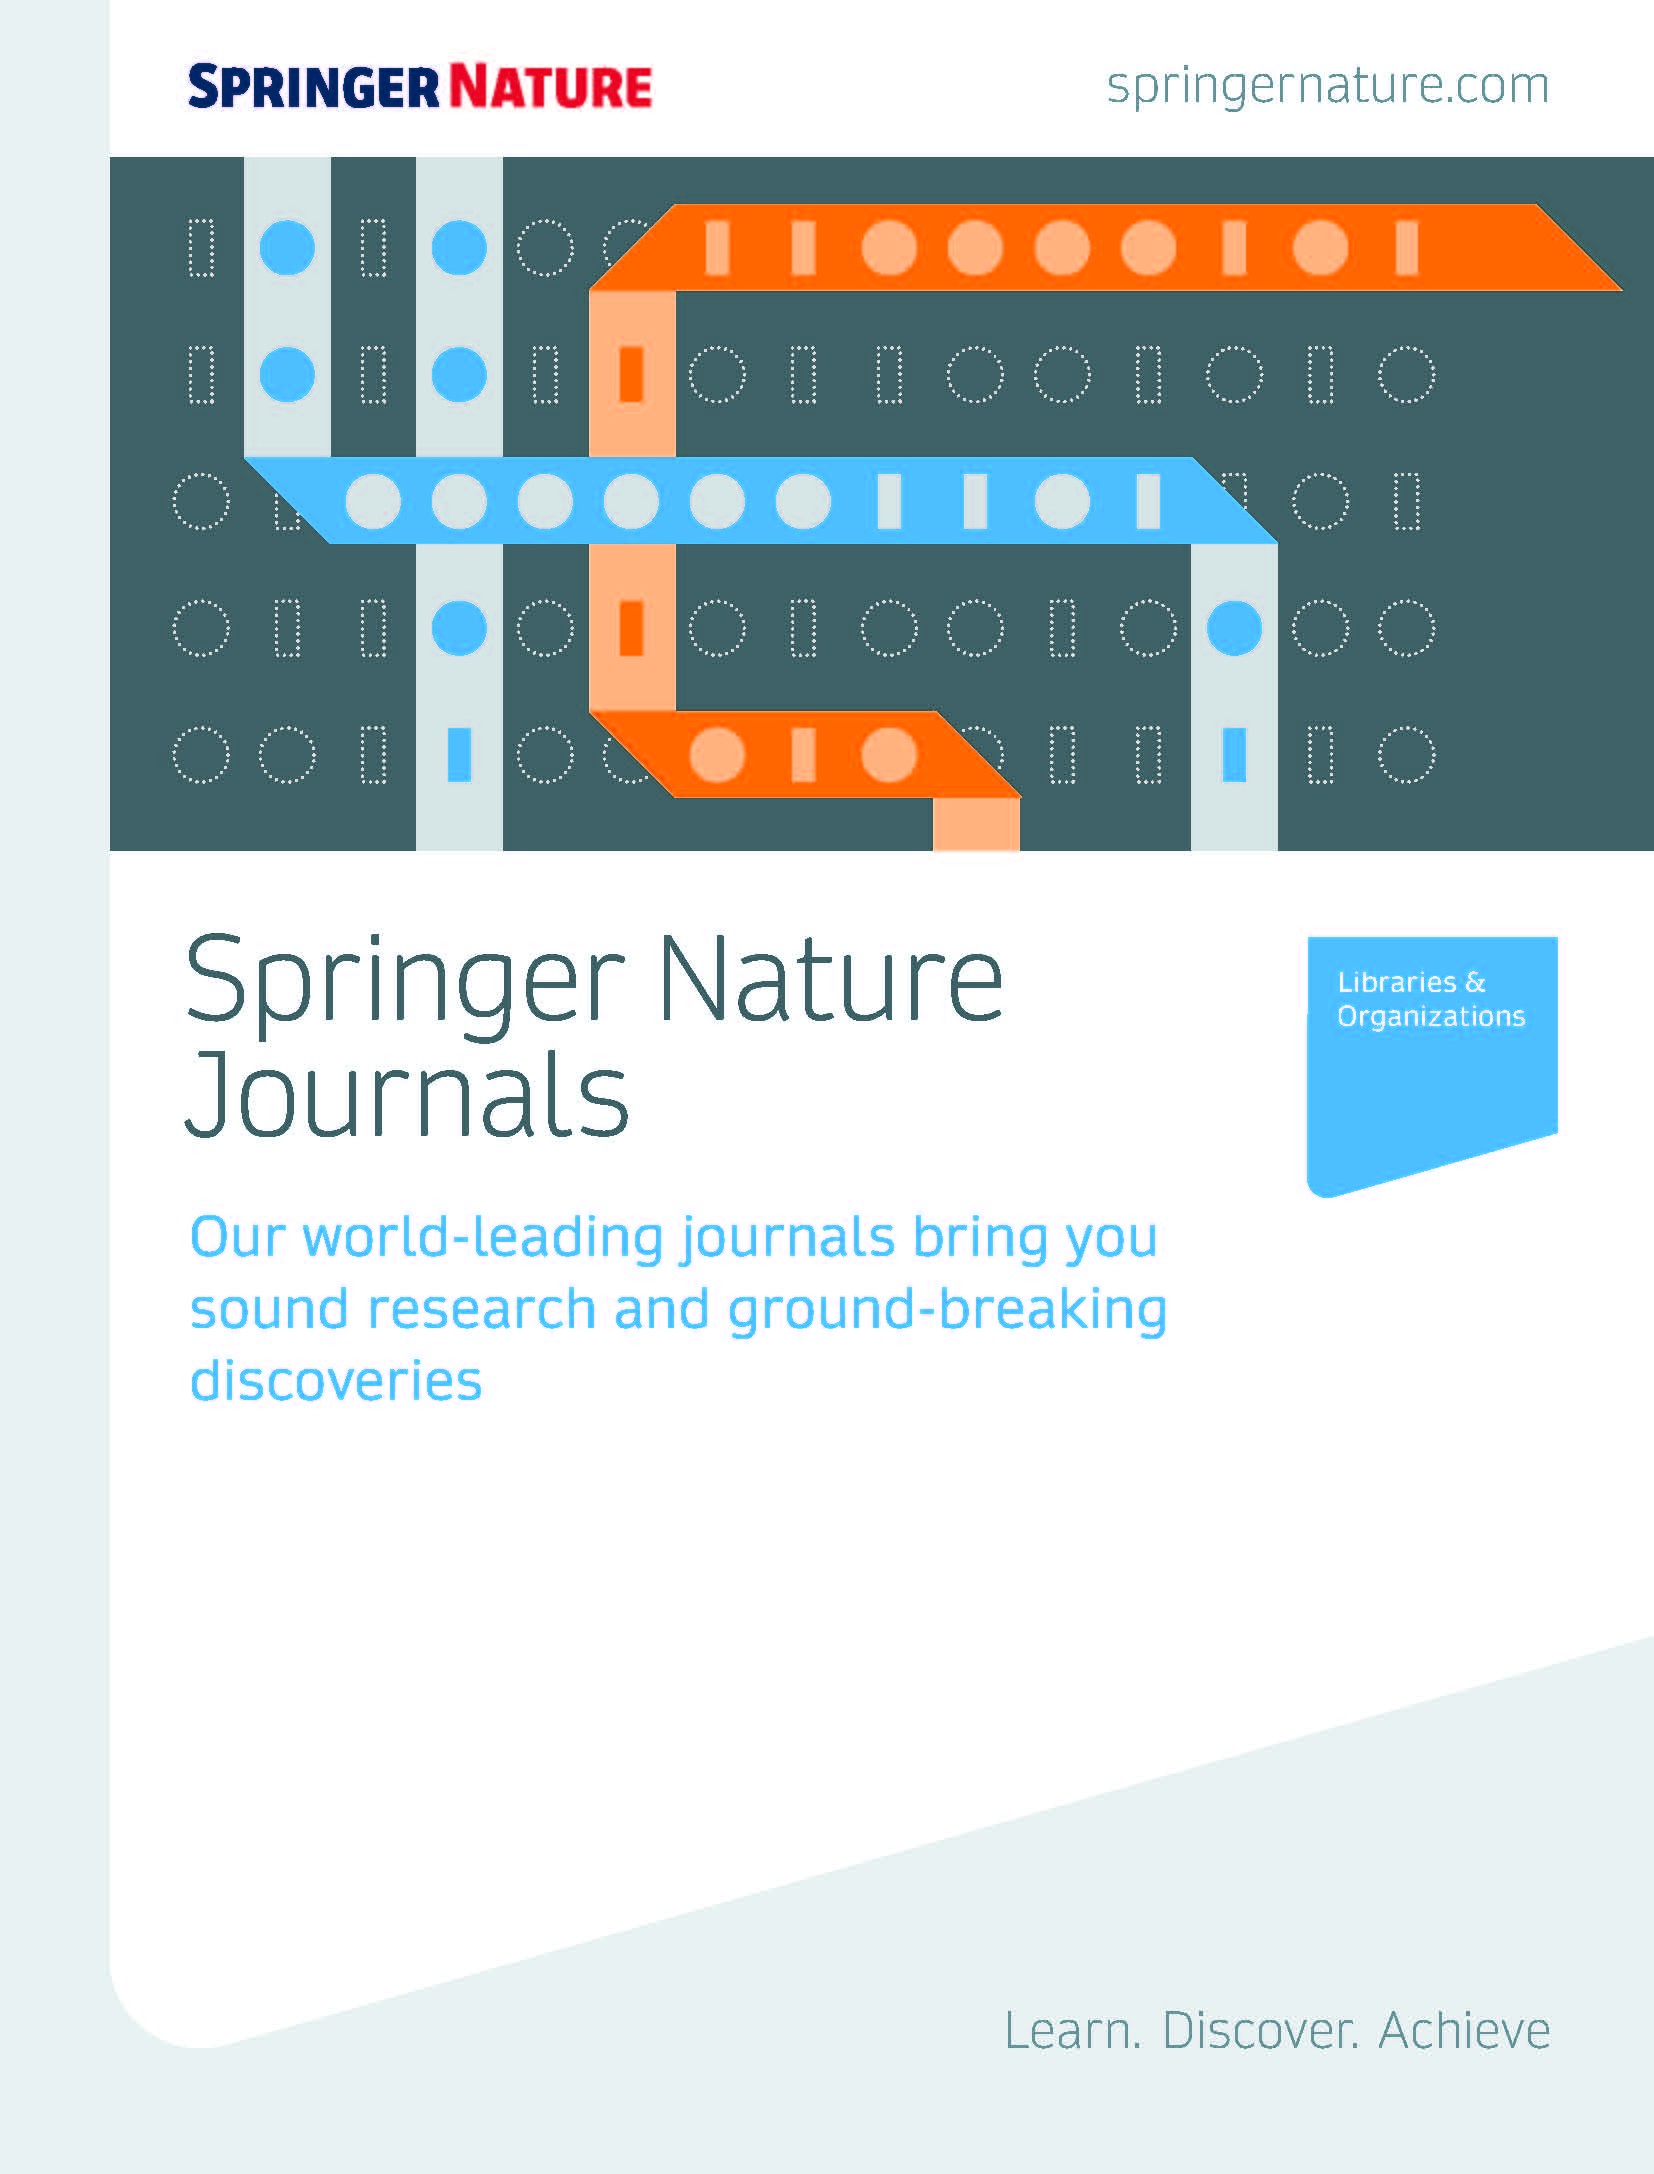 SpringerNature Overview